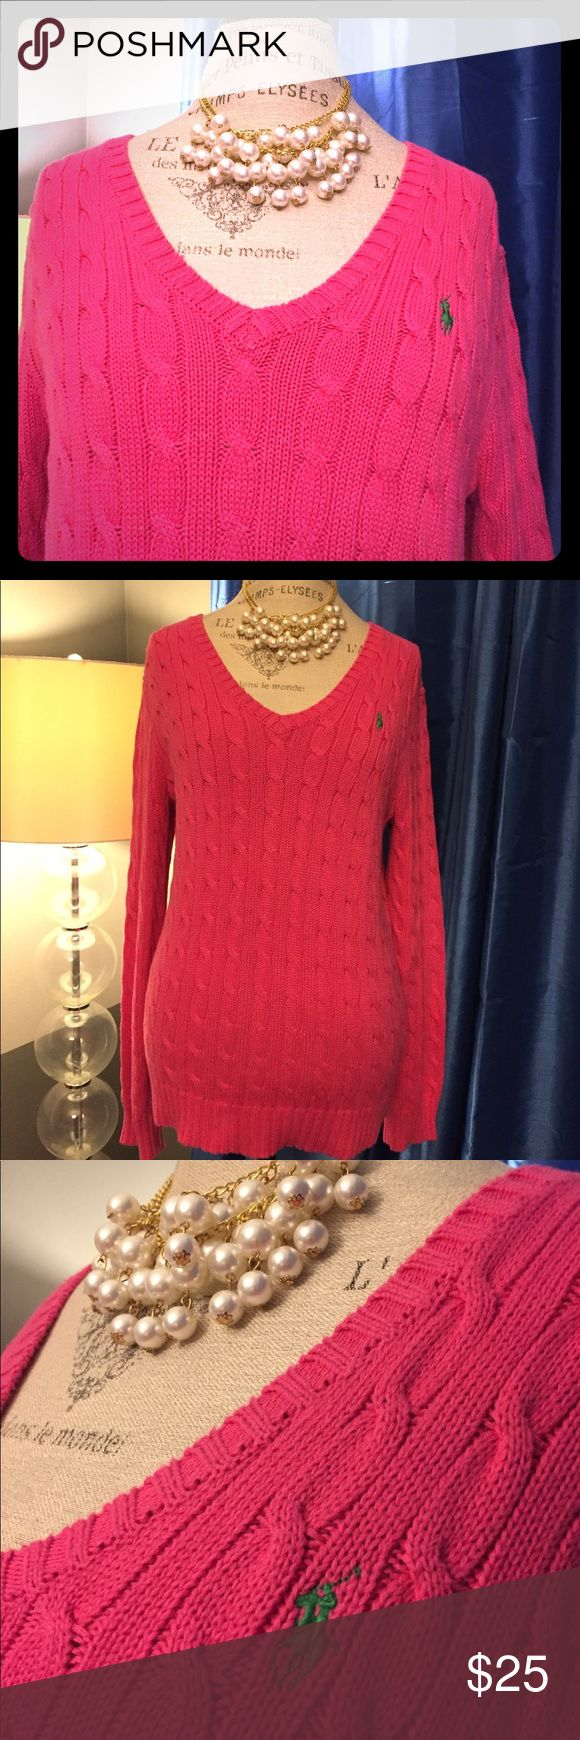 NWOT Ralph Lauren Pink V-Neck Cable Sweater XL Brand new, never worn and it was even just dry cleaned.  This sweater is in excellent condition and you won't be disappointed. Smoke, pet and perfume free home. XL Lauren Ralph Lauren Sweaters V-Necks